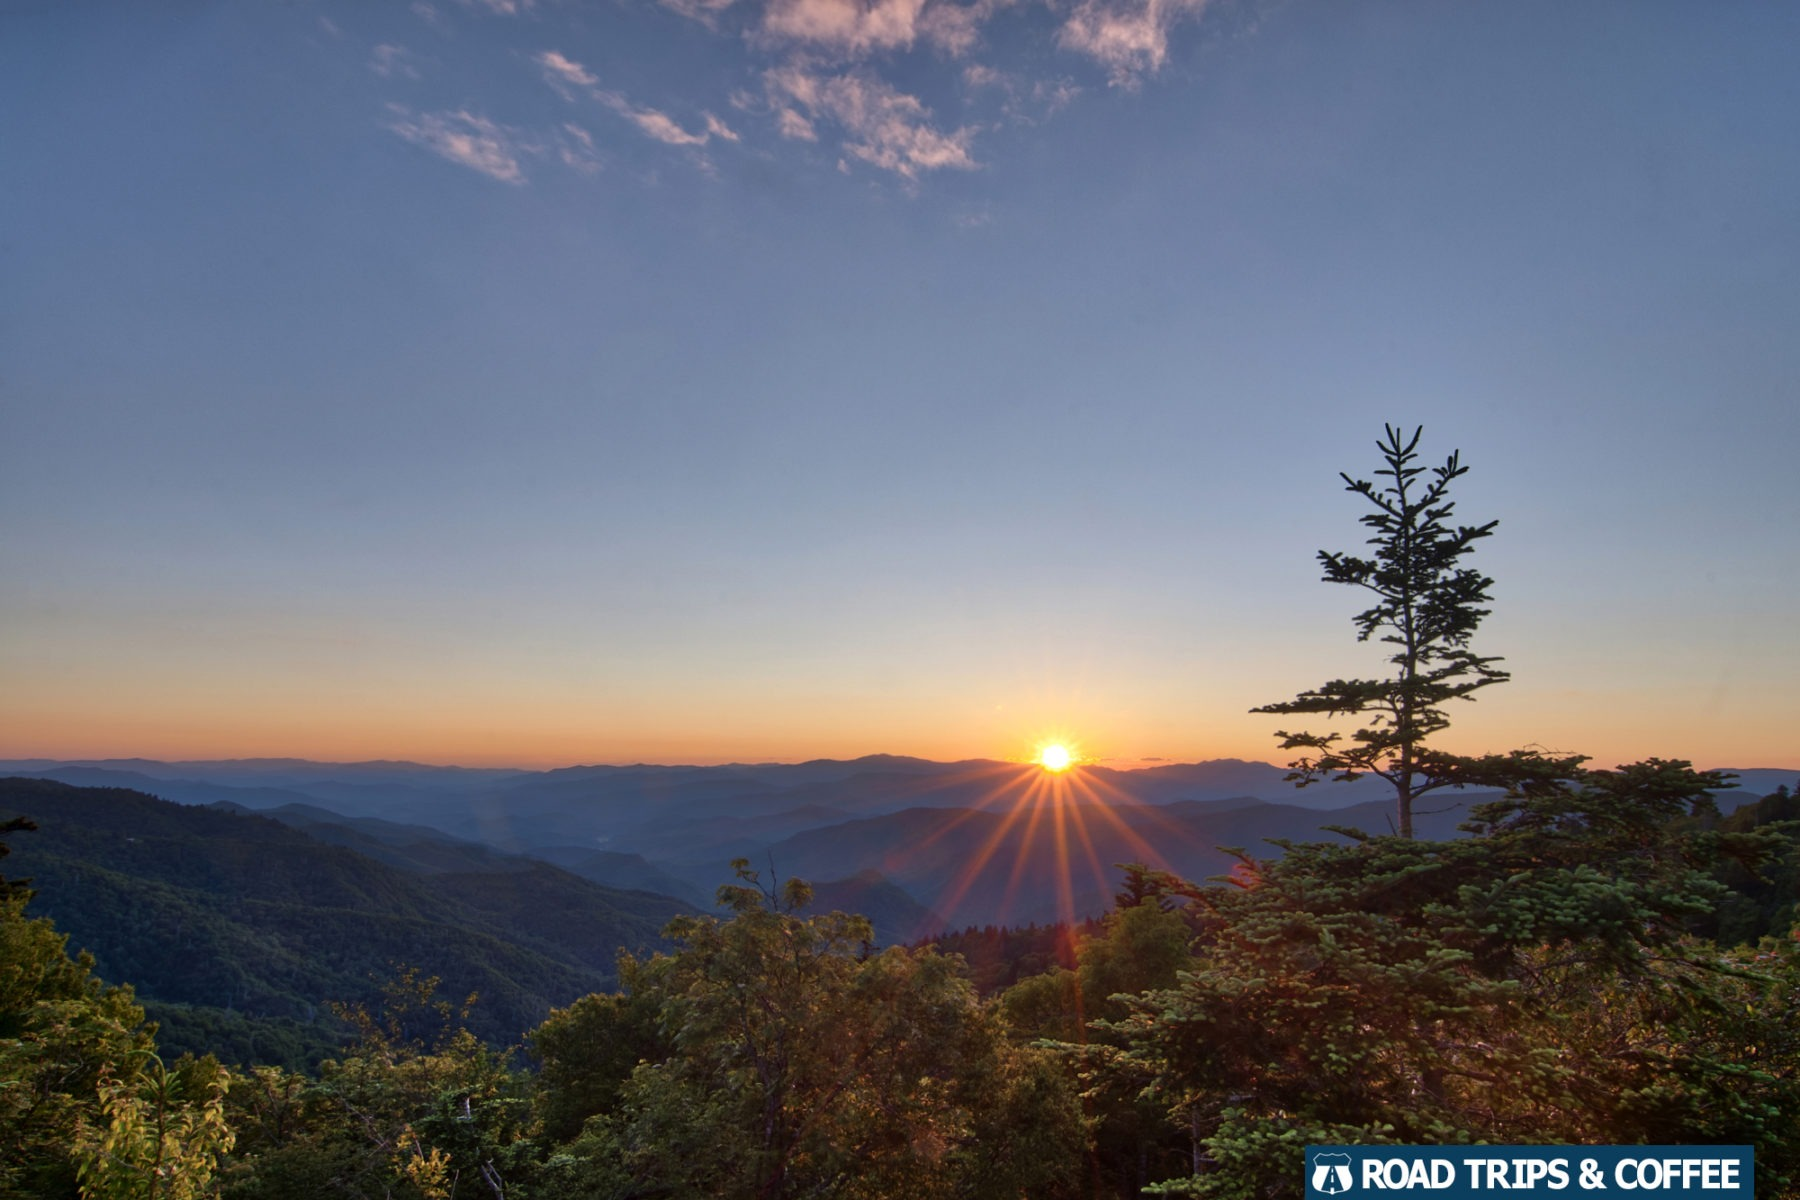 A cool sunset from Waterrock Knob on the Blue Ridge Parkway in North Carolina